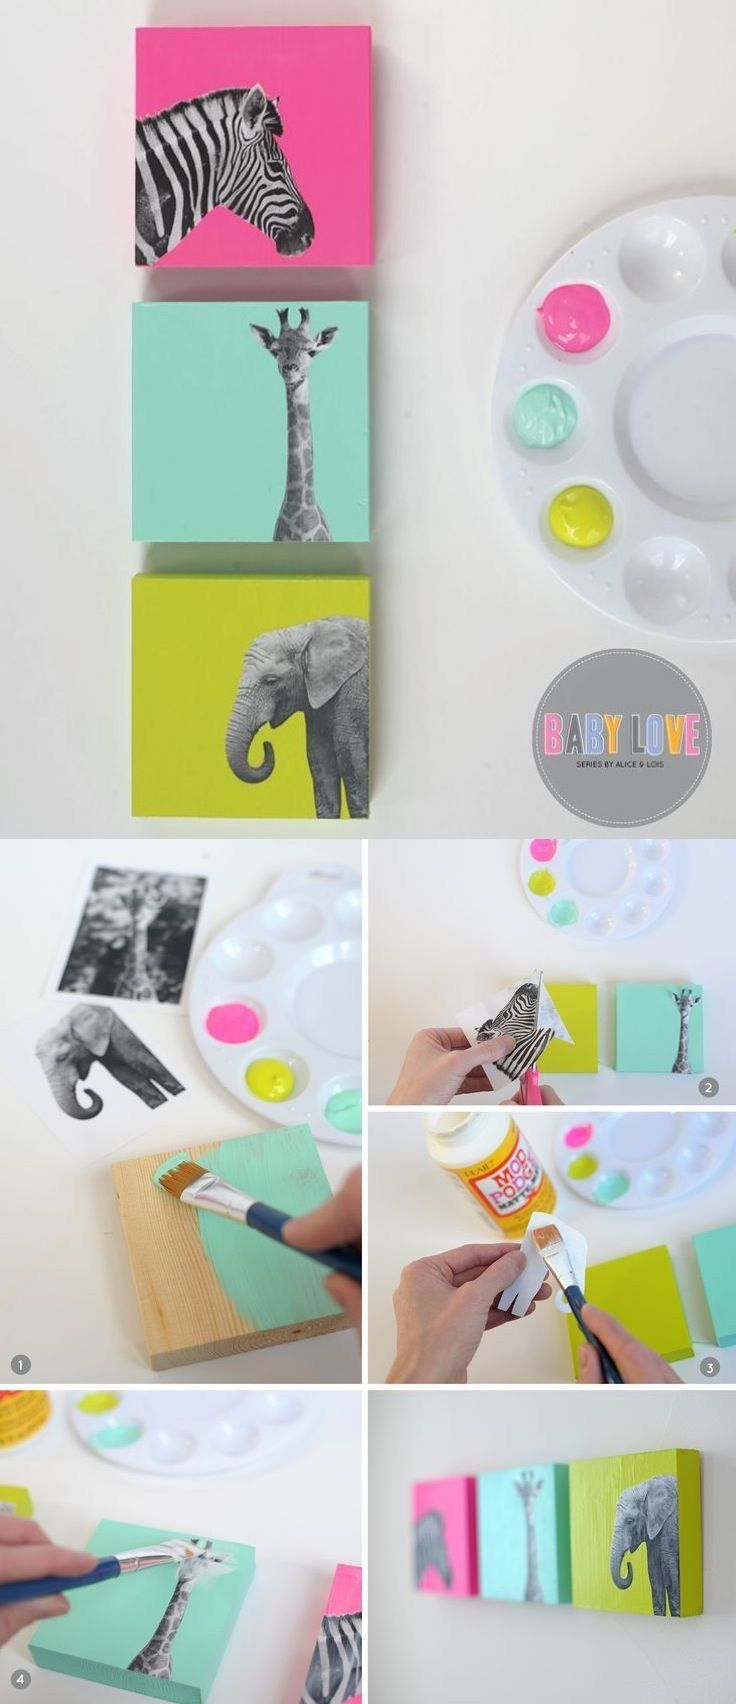 This Would Work With Any Design, Color, Pattern. Mommo Design: 6 CUTE DIY  PROJECTS FOR KIDS Kids Bedroom Inspiration Kids Bedroom Organization